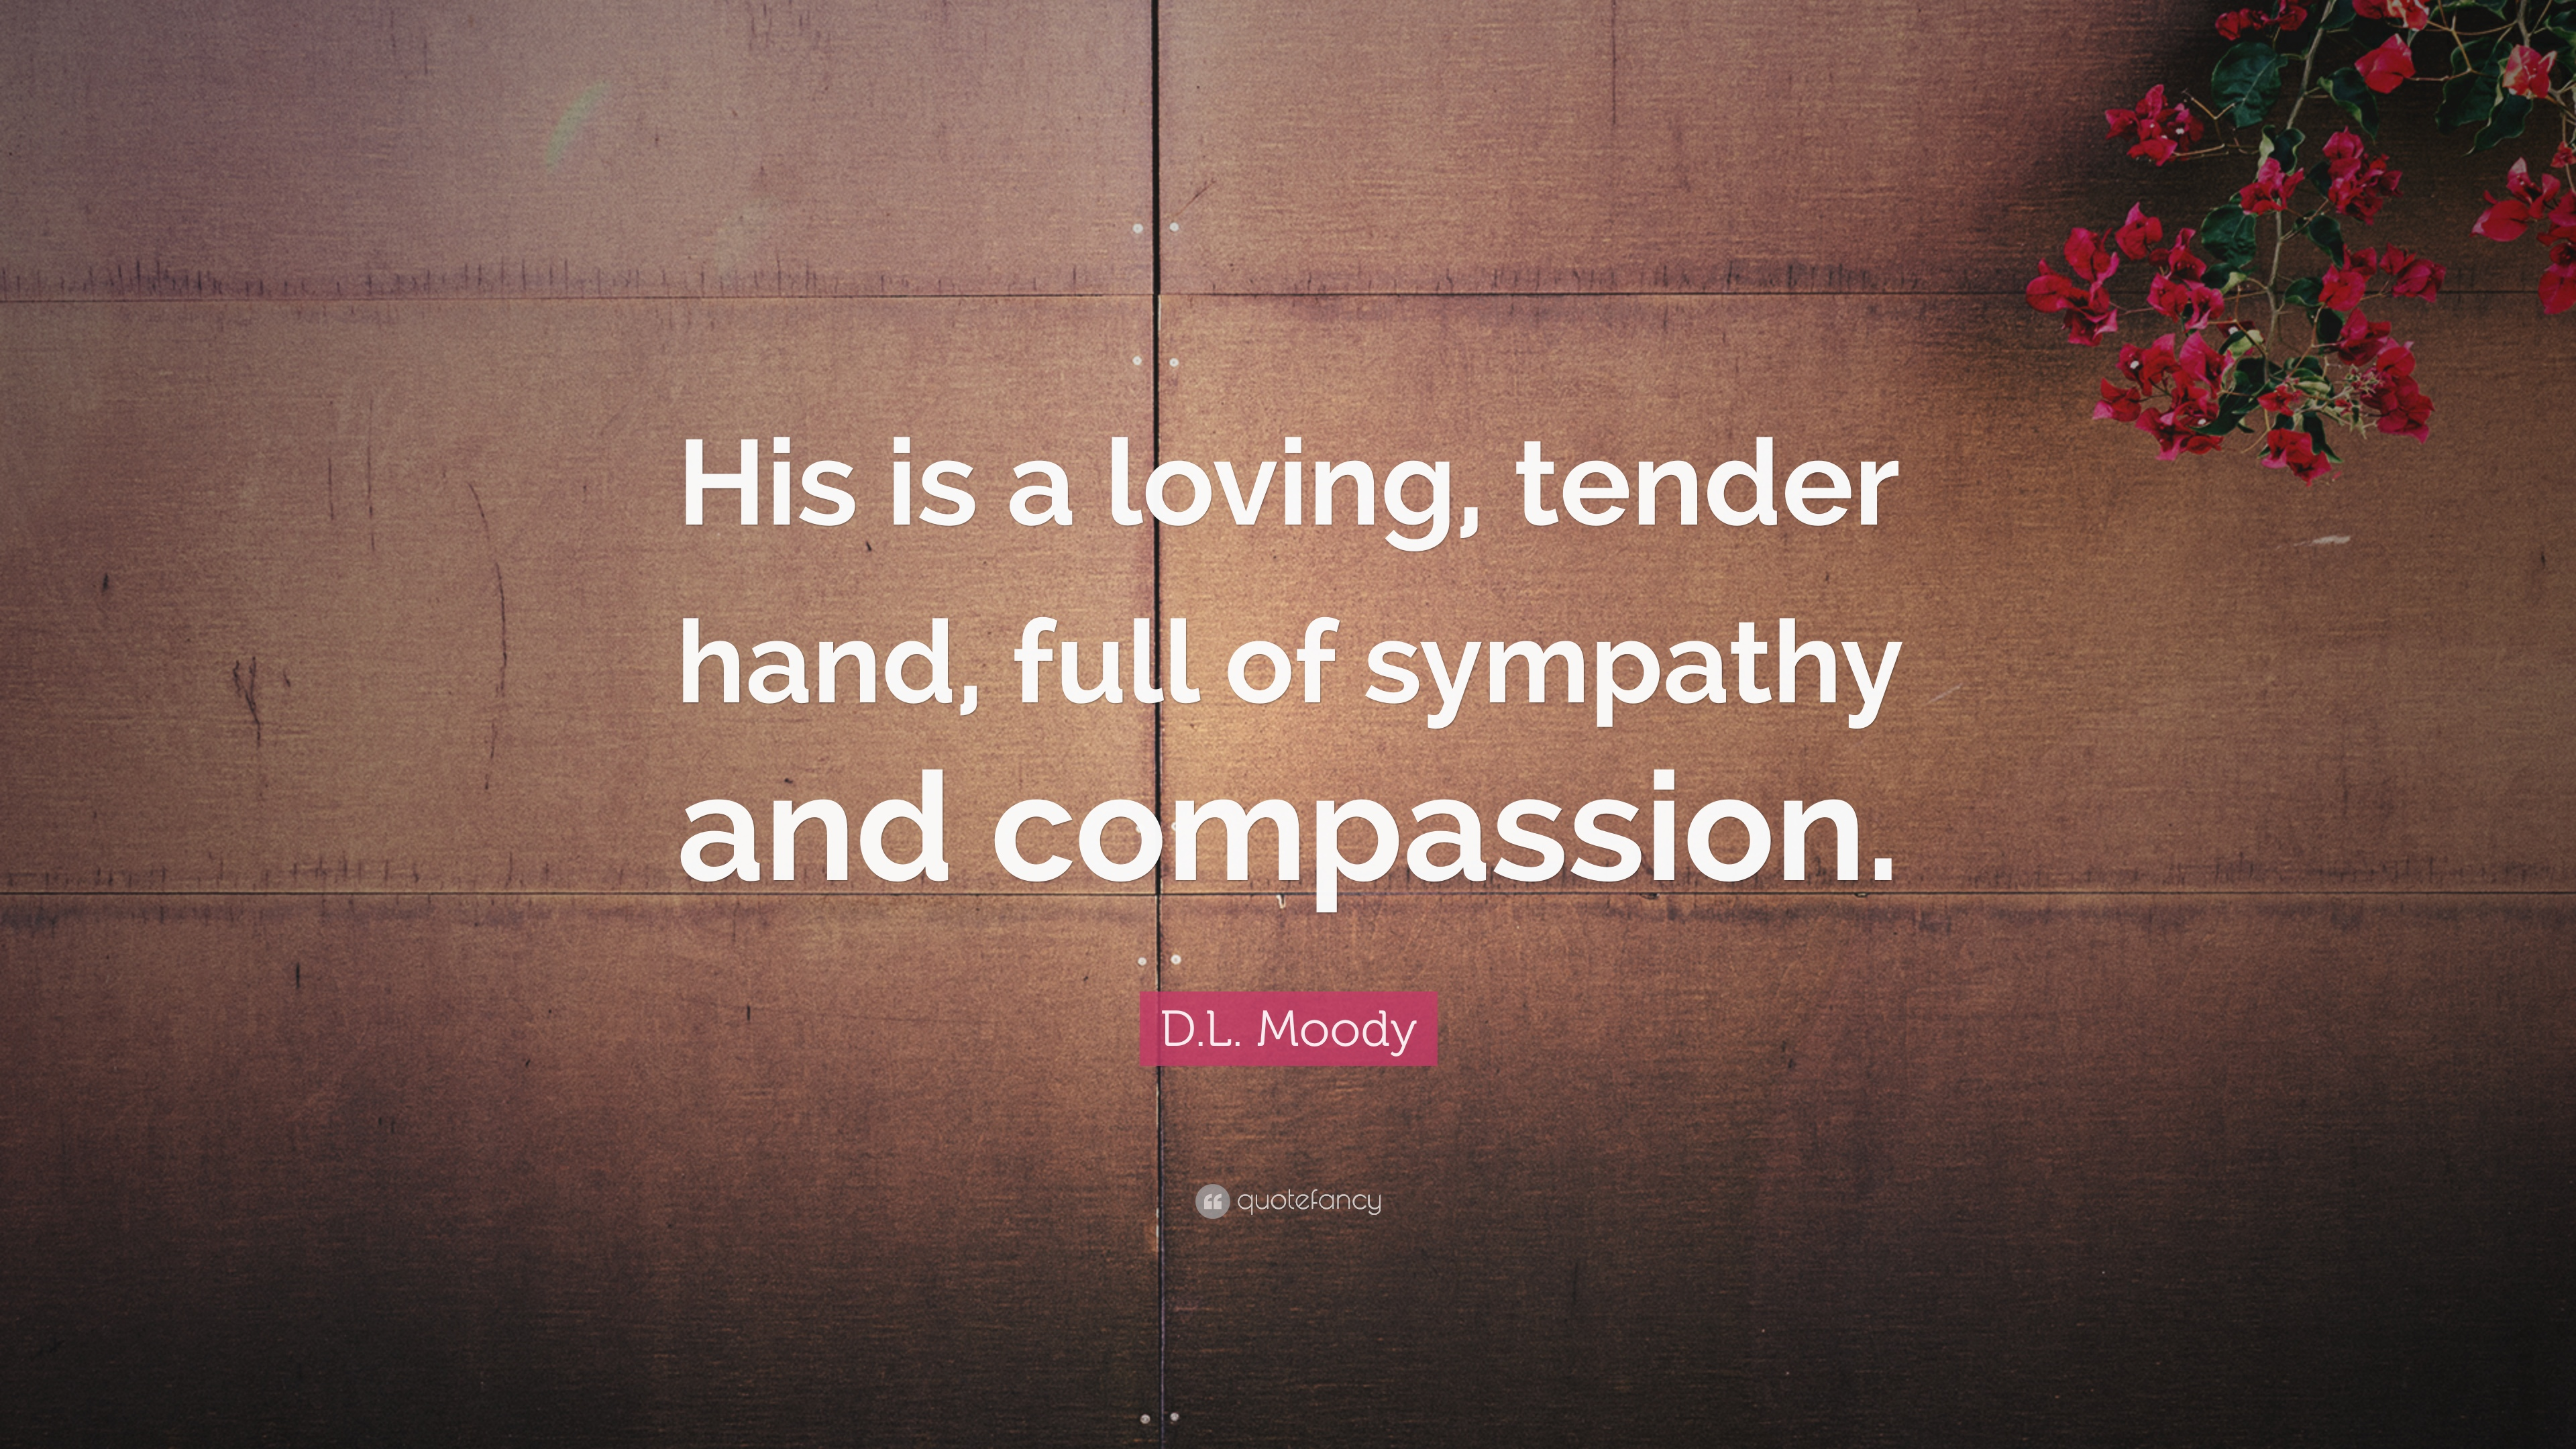 Dl moody quote his is a loving tender hand full of sympathy dl moody quote his is a loving tender hand full of sympathy altavistaventures Choice Image